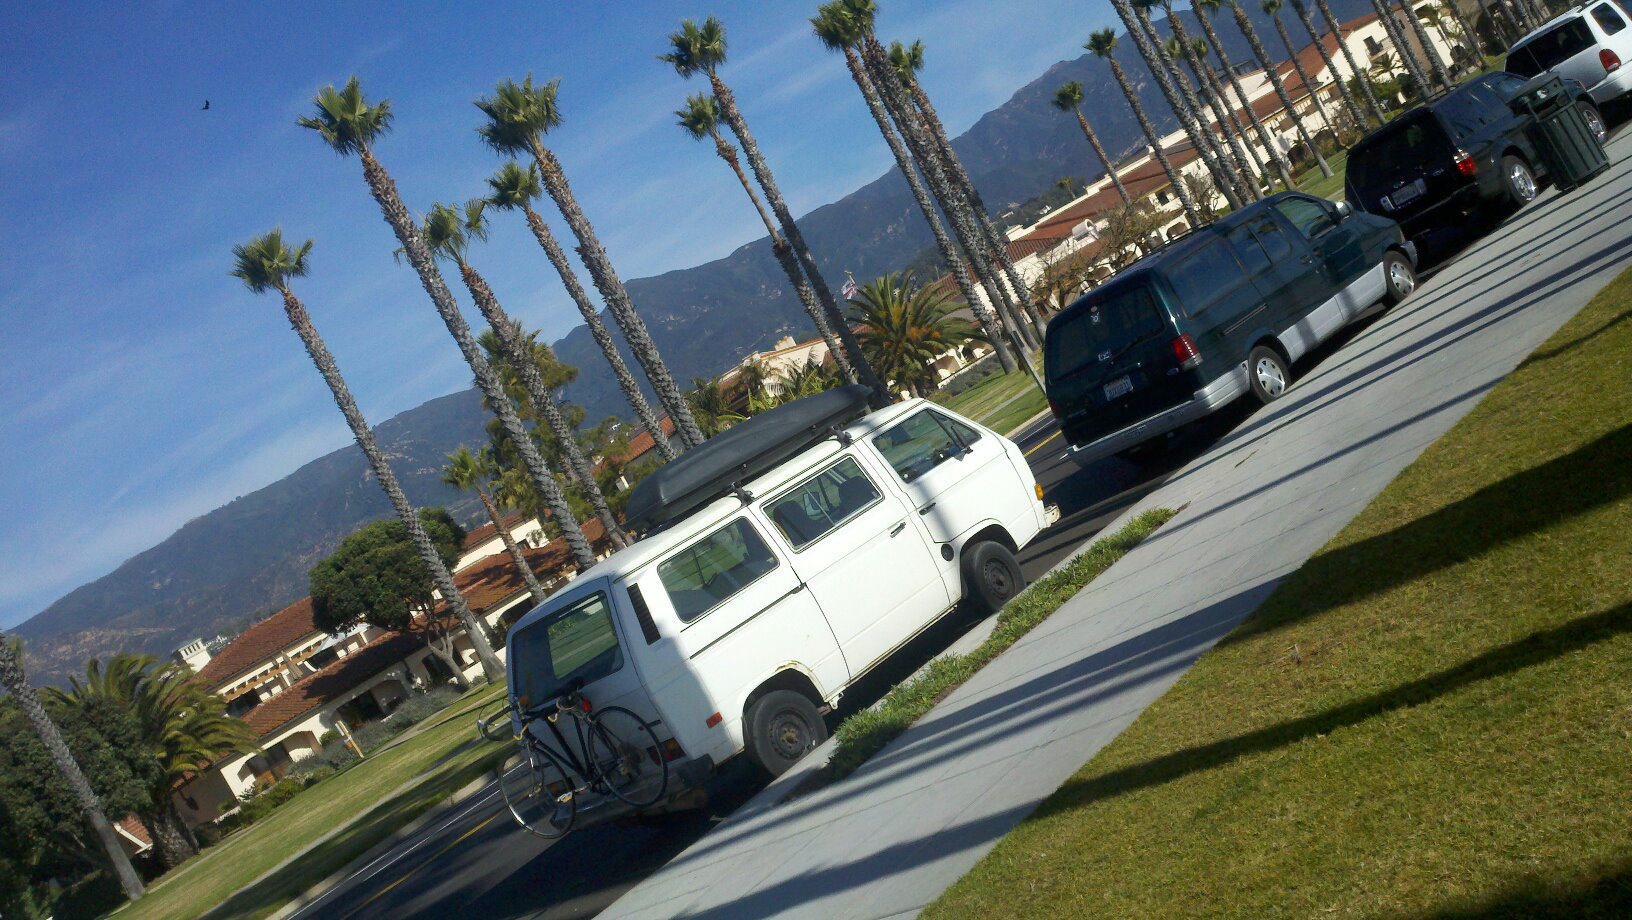 vanagon in Santa Barbara